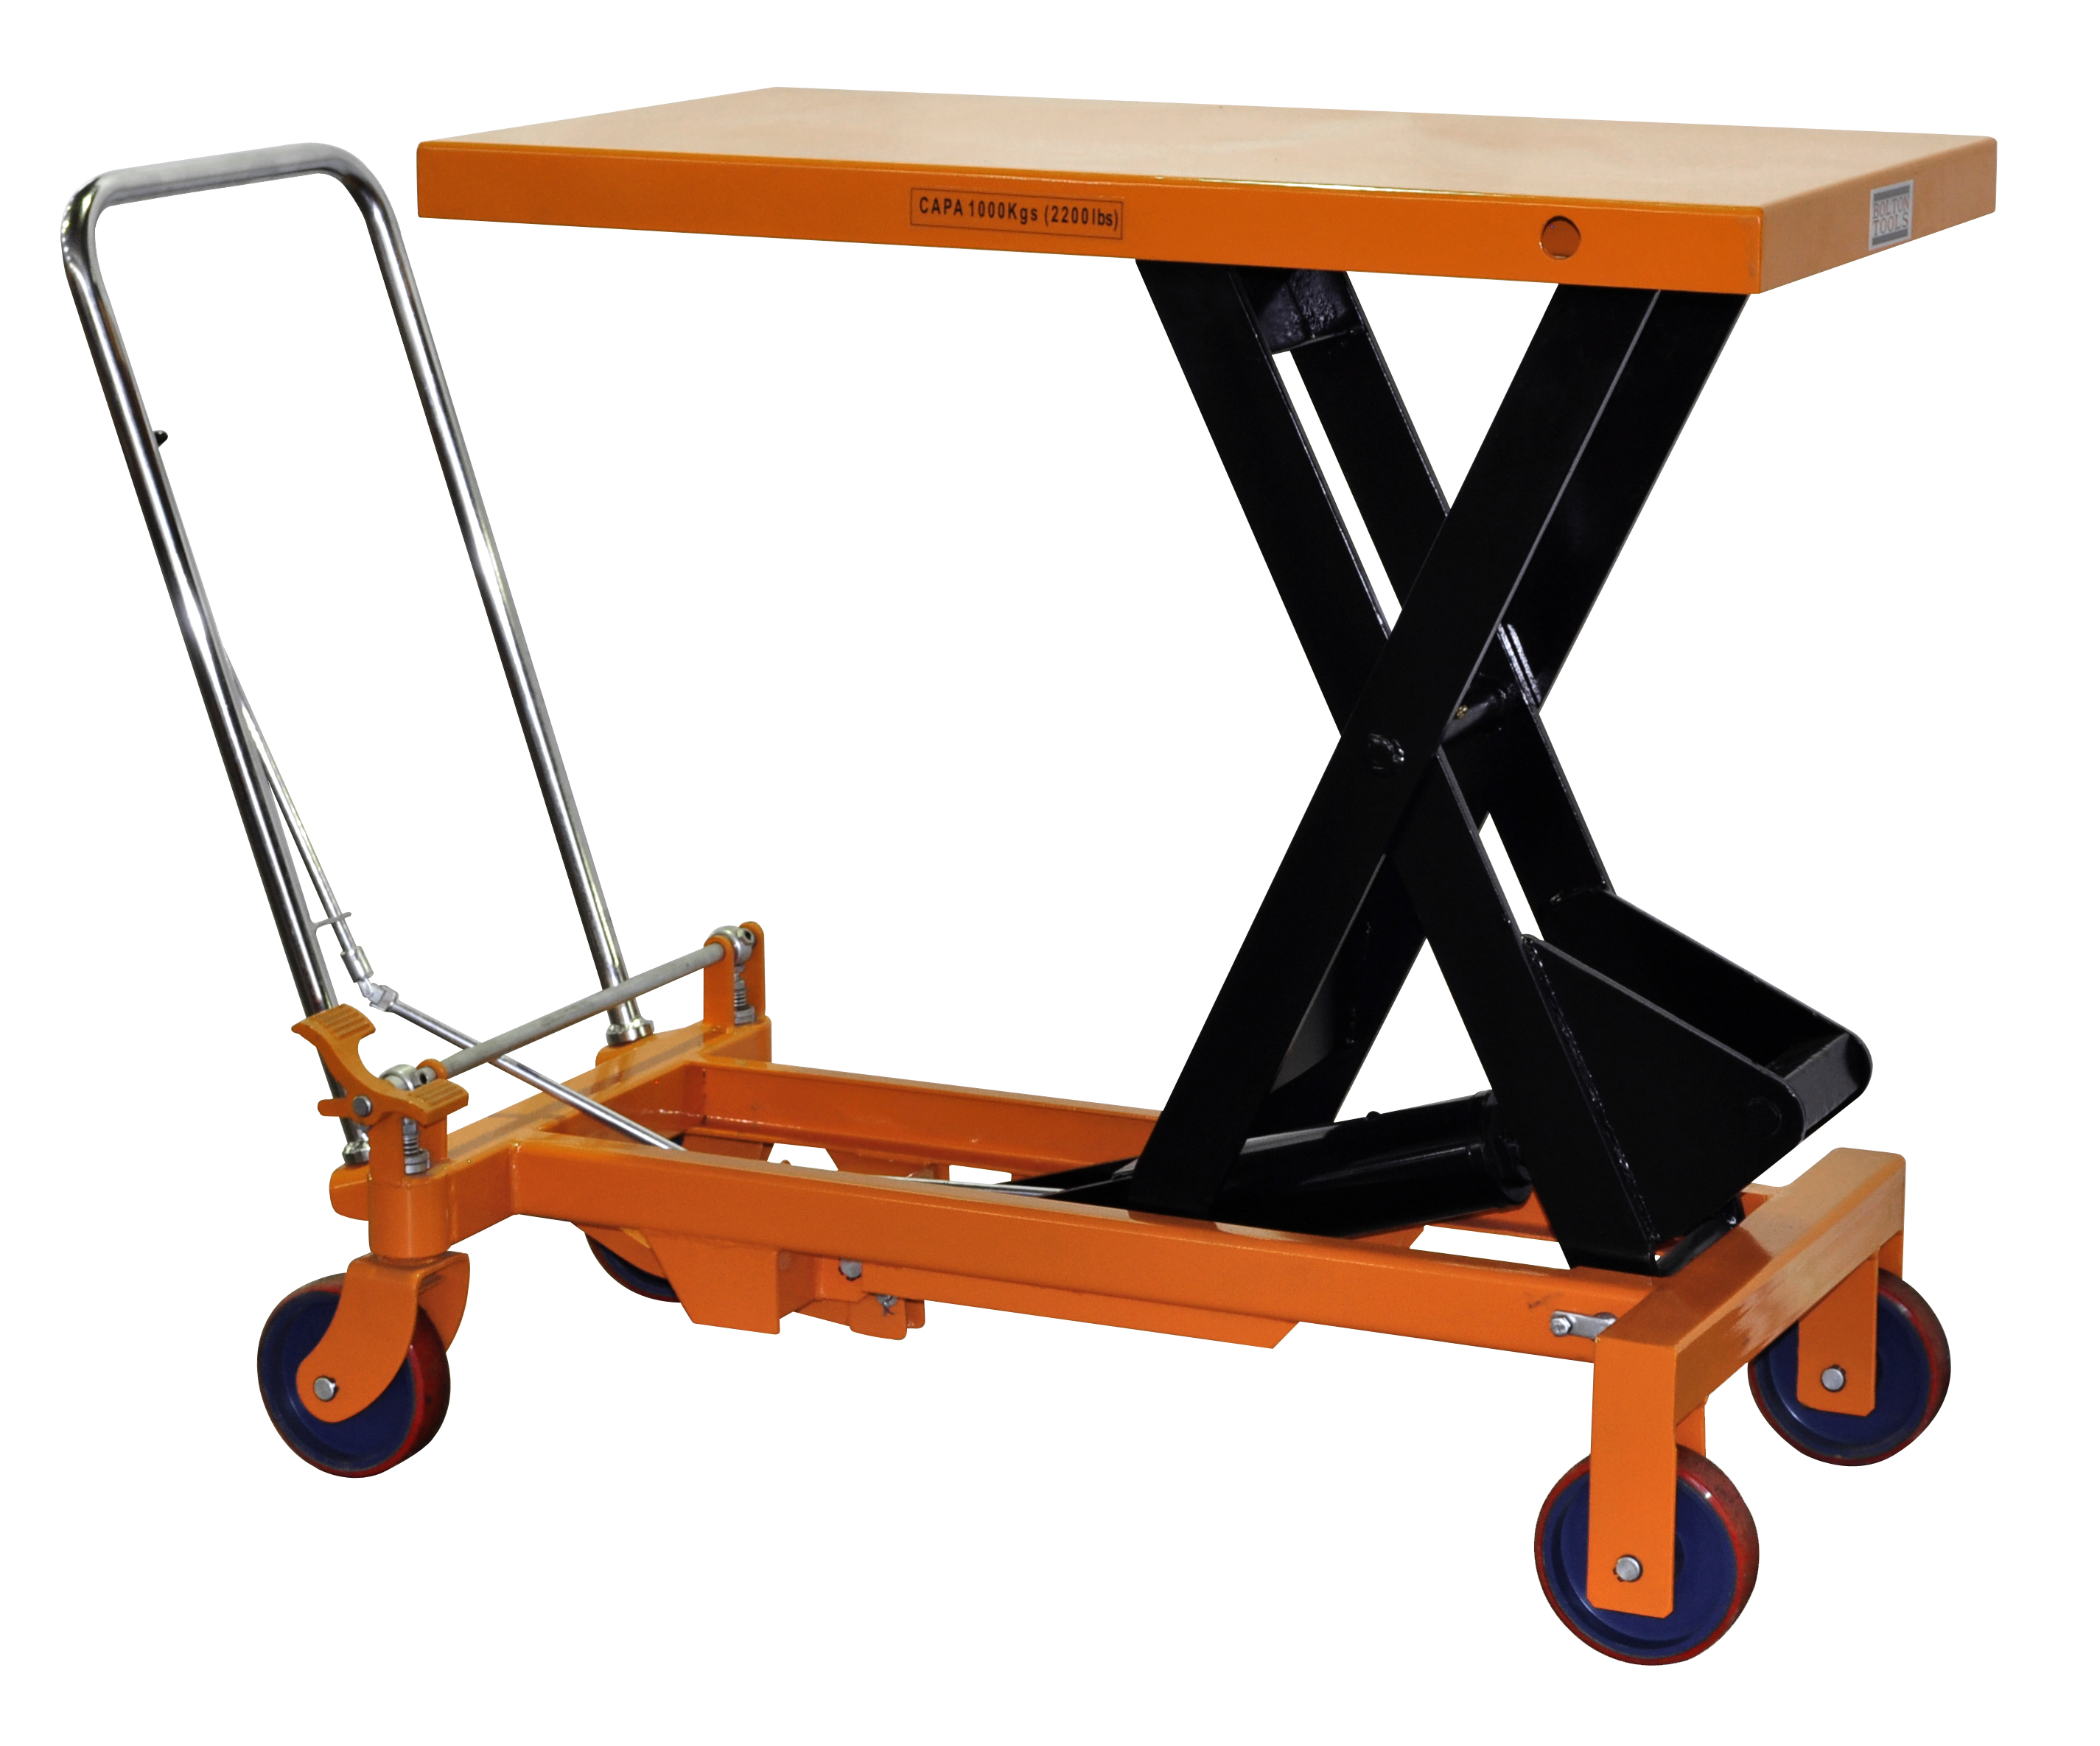 tables options category mobile lift table scissor specialists trolley height capacity hx lifting scissors trolleys pfaff equipment main